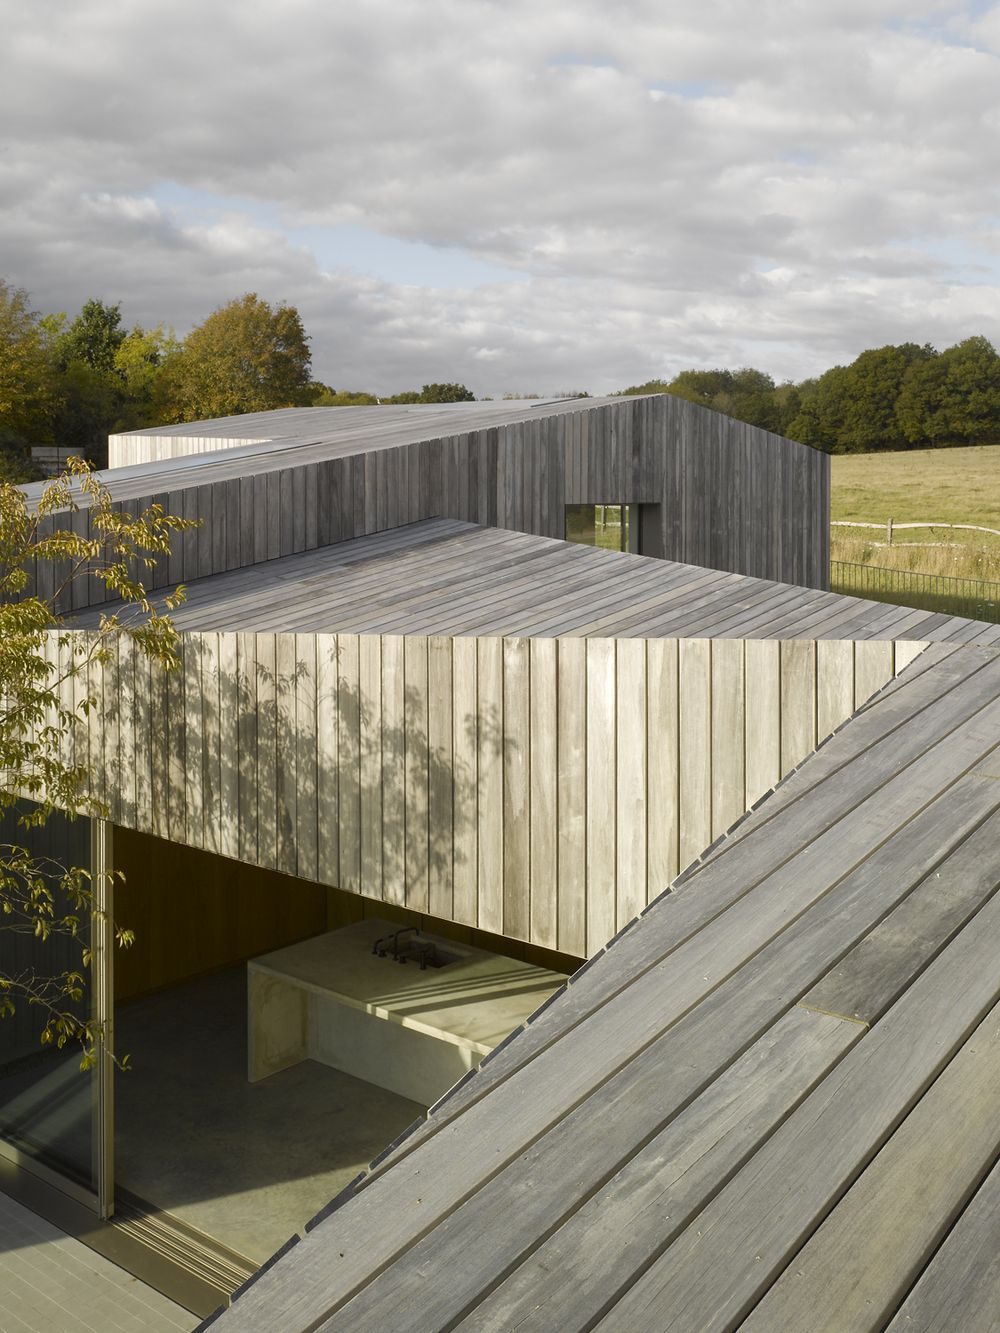 duggan morris architects / old bearhurst addition, east sussex